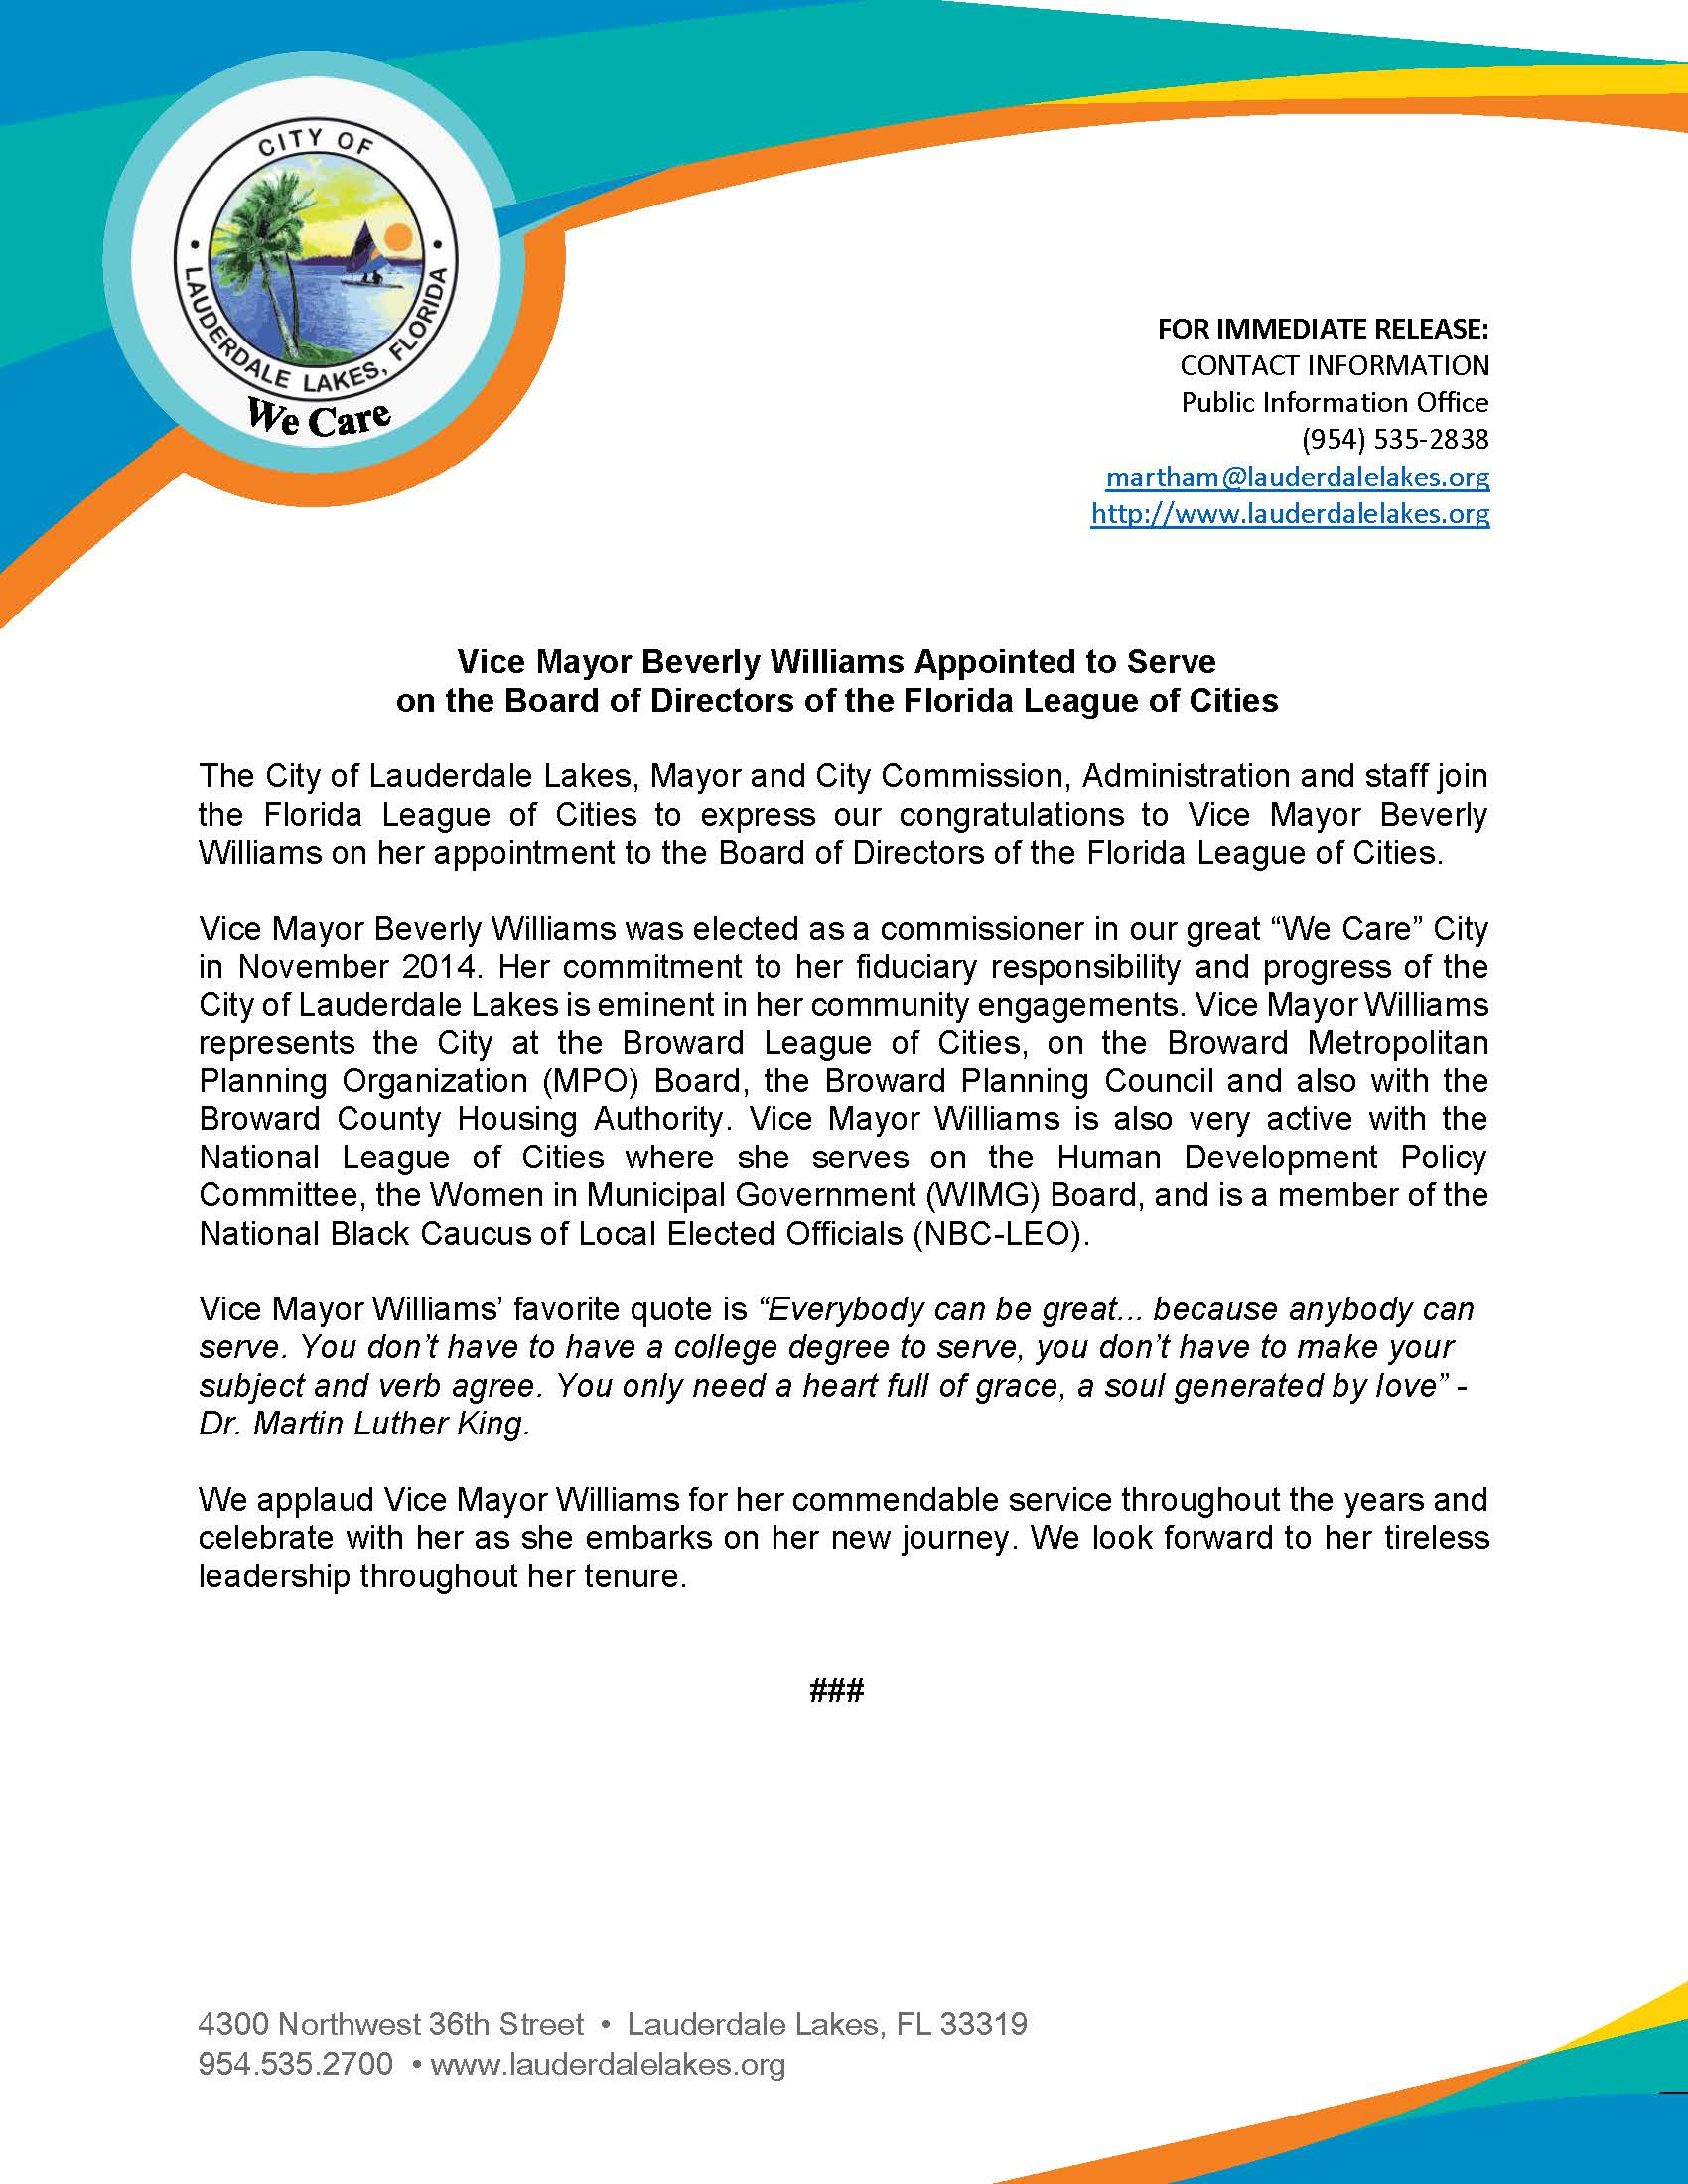 Press Release - Vice Mayor Williams Appointed to FL League of Cities Board of Directors